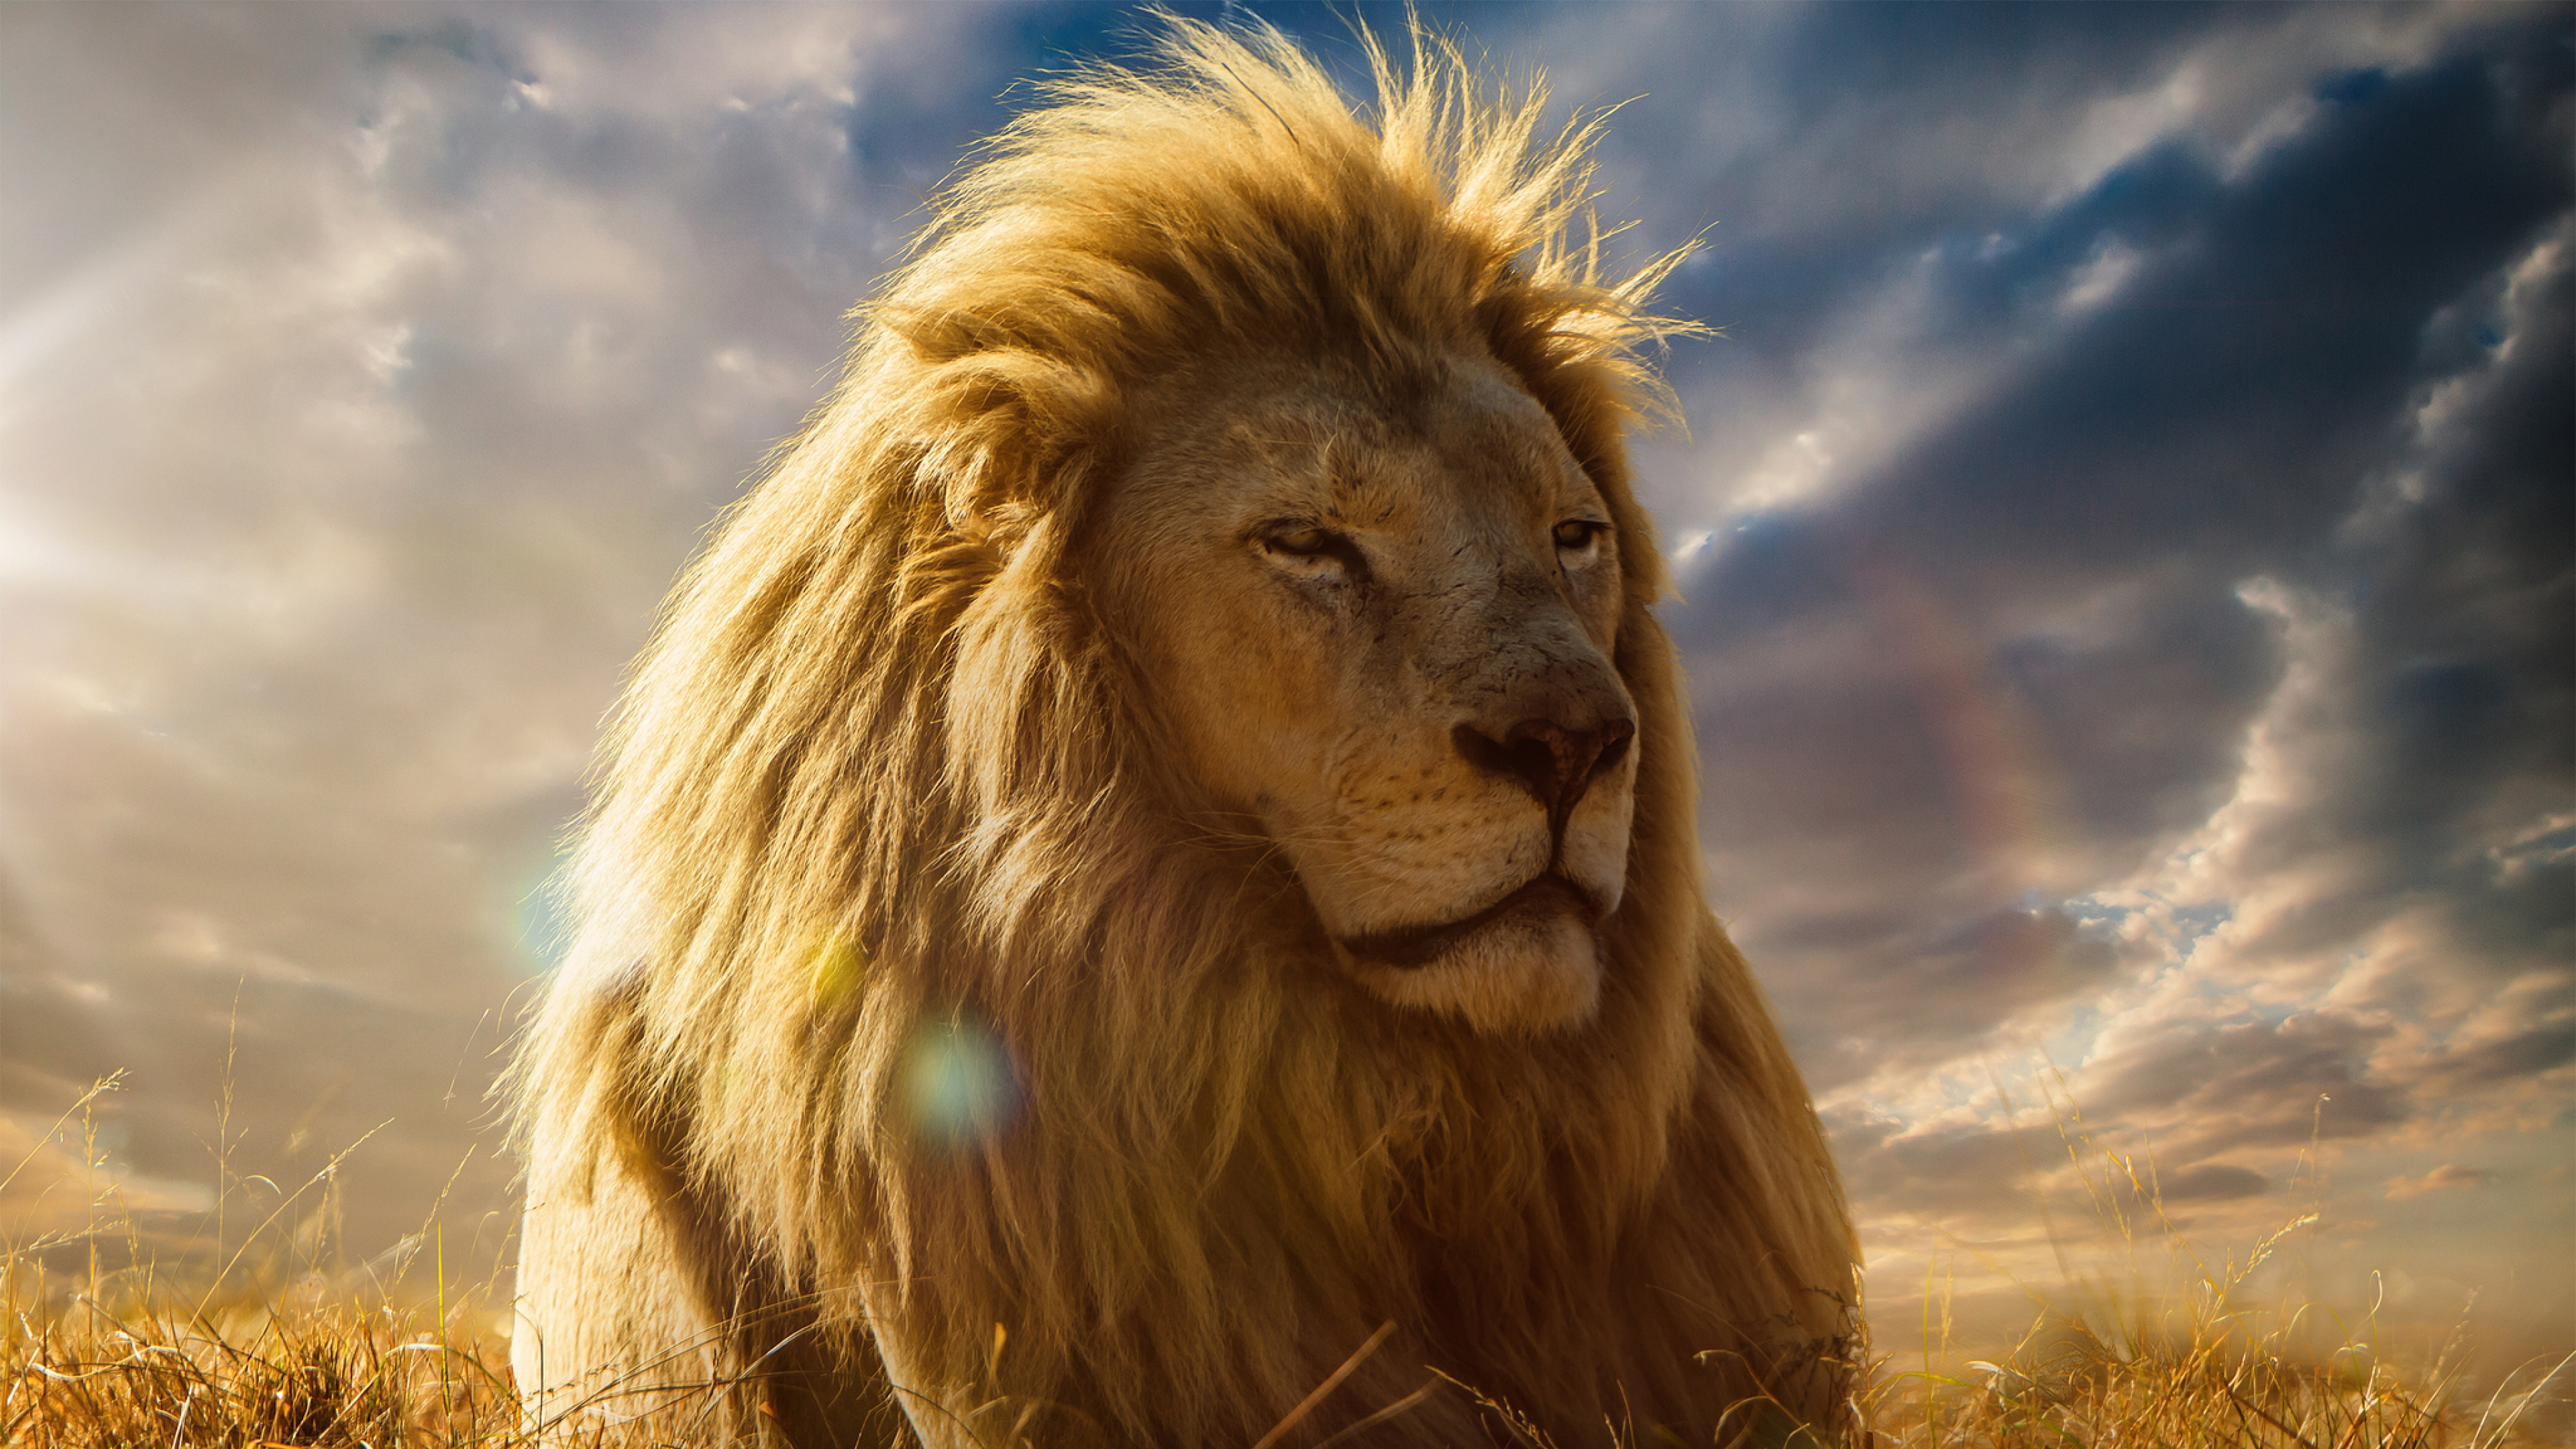 4k Ultra Hd Lion Wallpapers Hd, Desktop Backgrounds , HD Wallpaper & Backgrounds